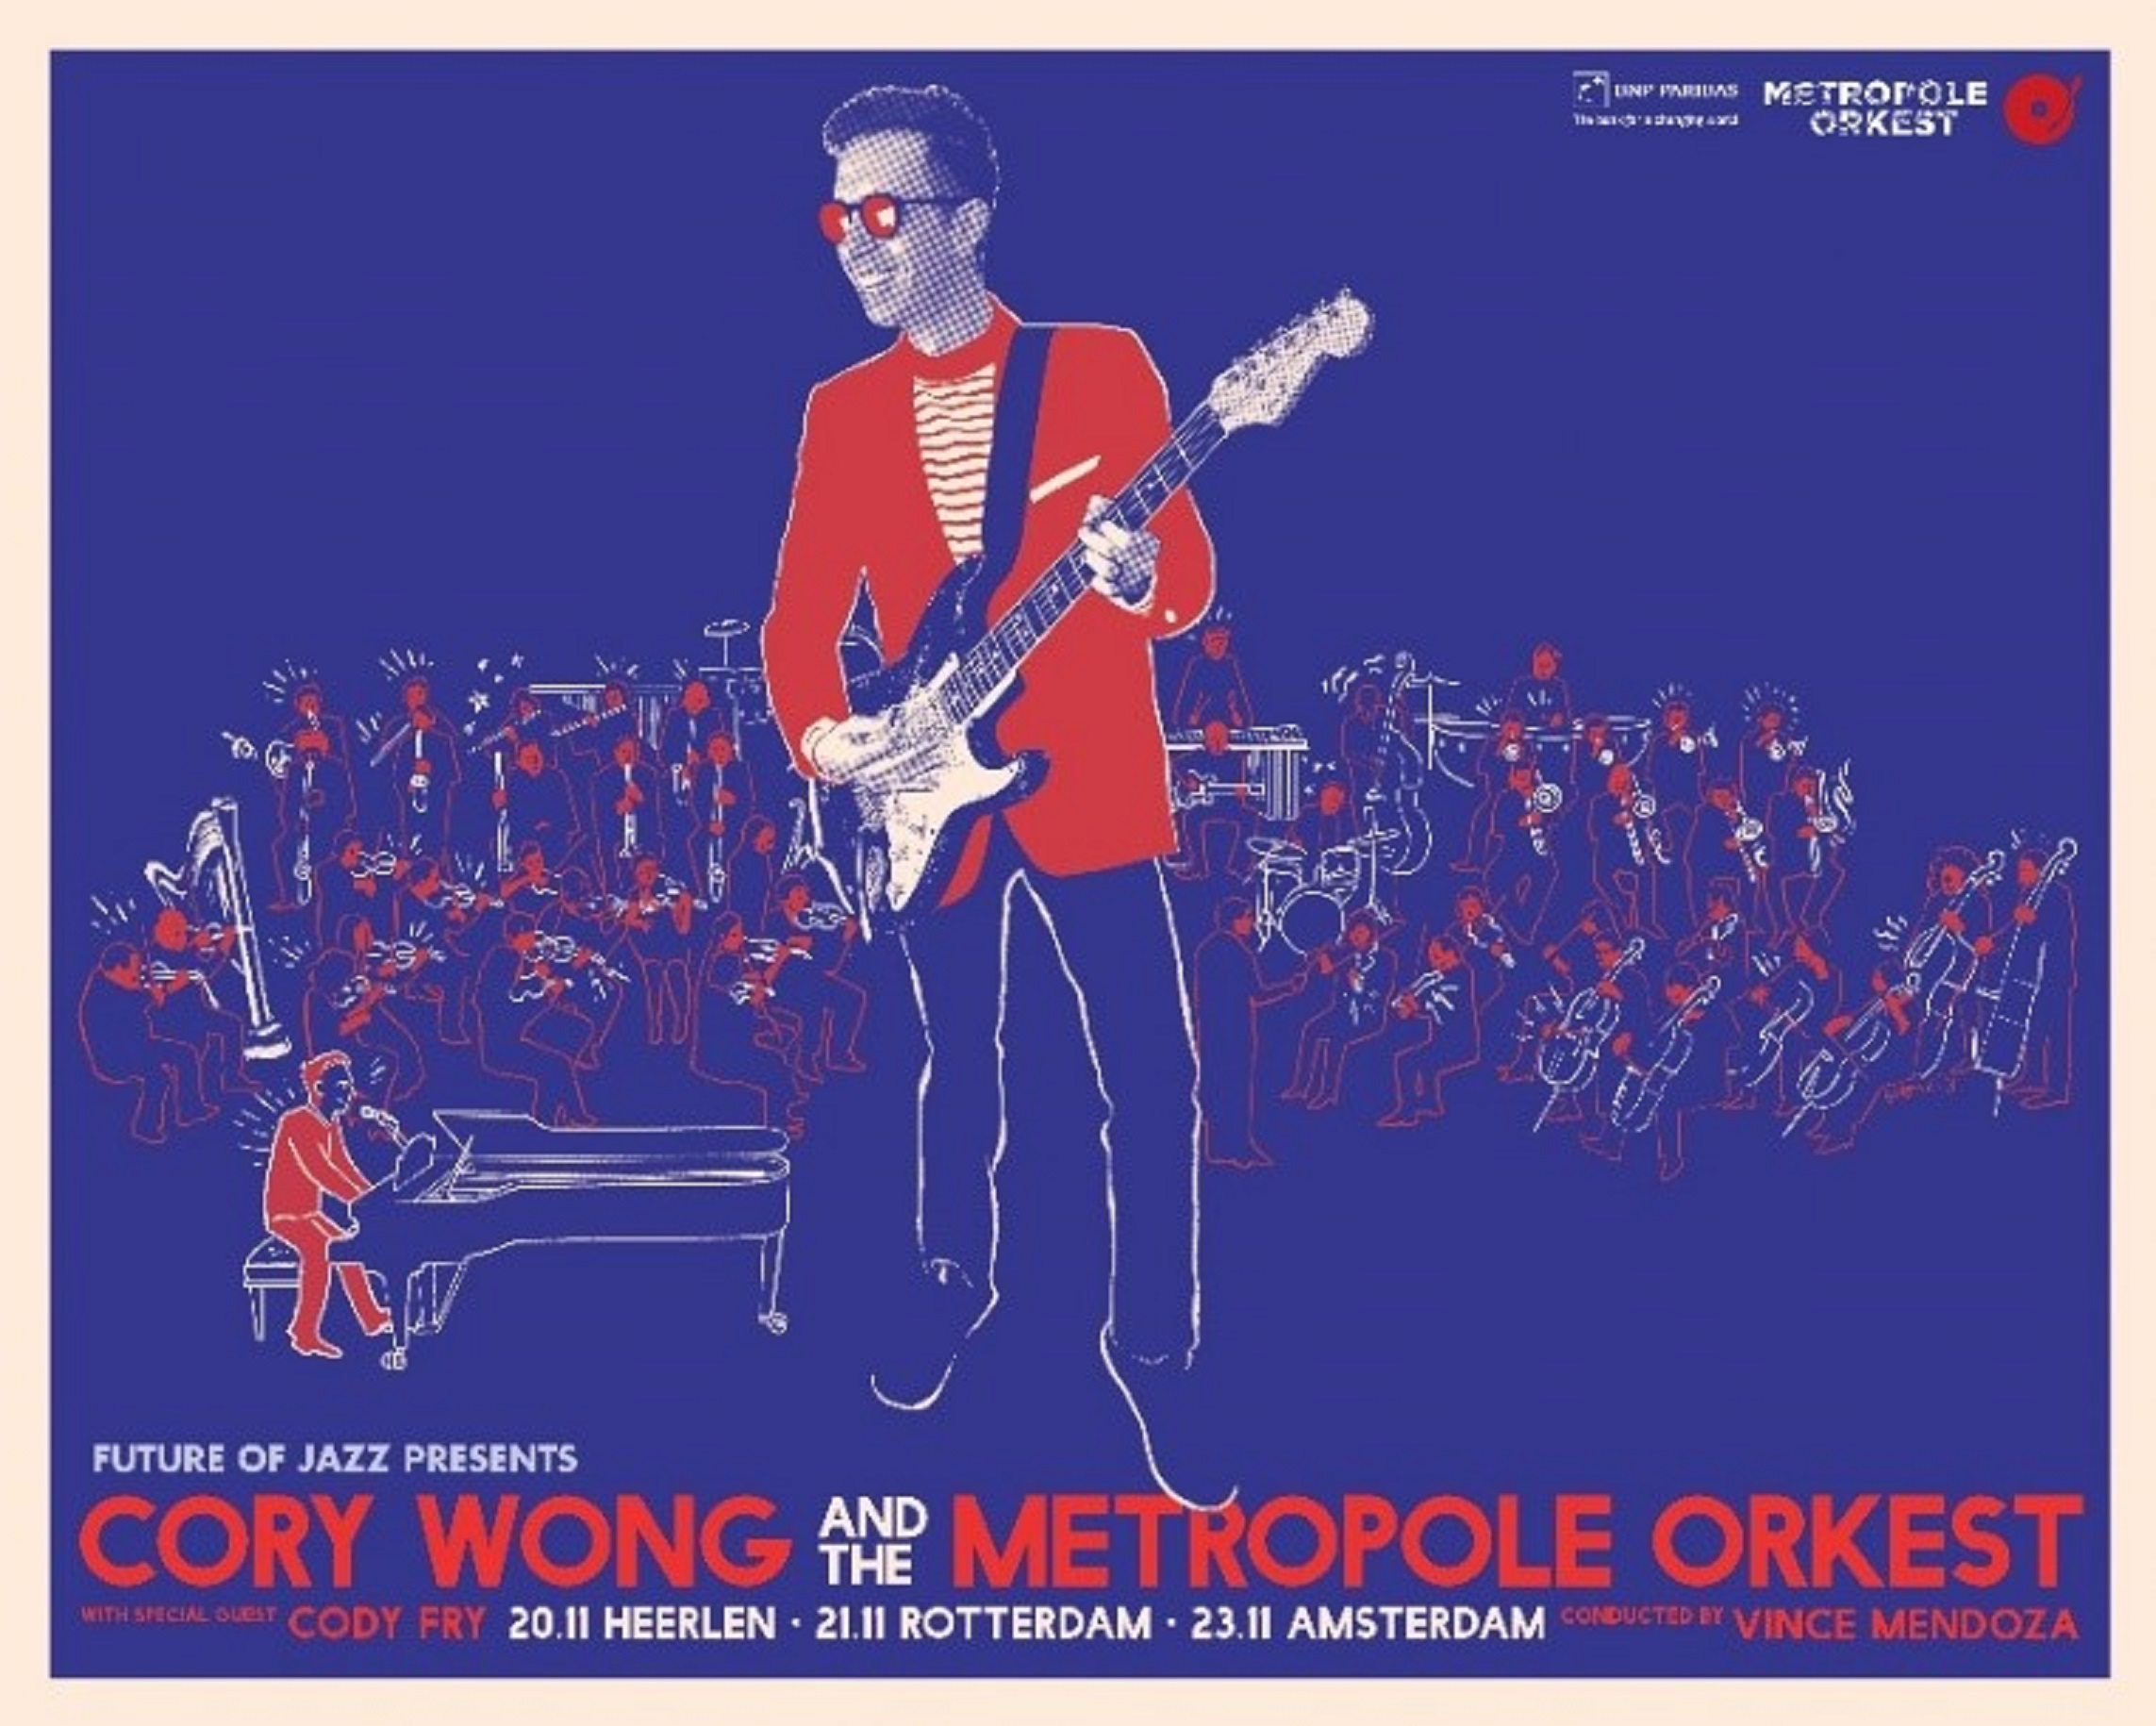 CORY WONG ANNOUNCES THREE SPECIAL PERFORMANCES WITH METROPOLE ORKEST